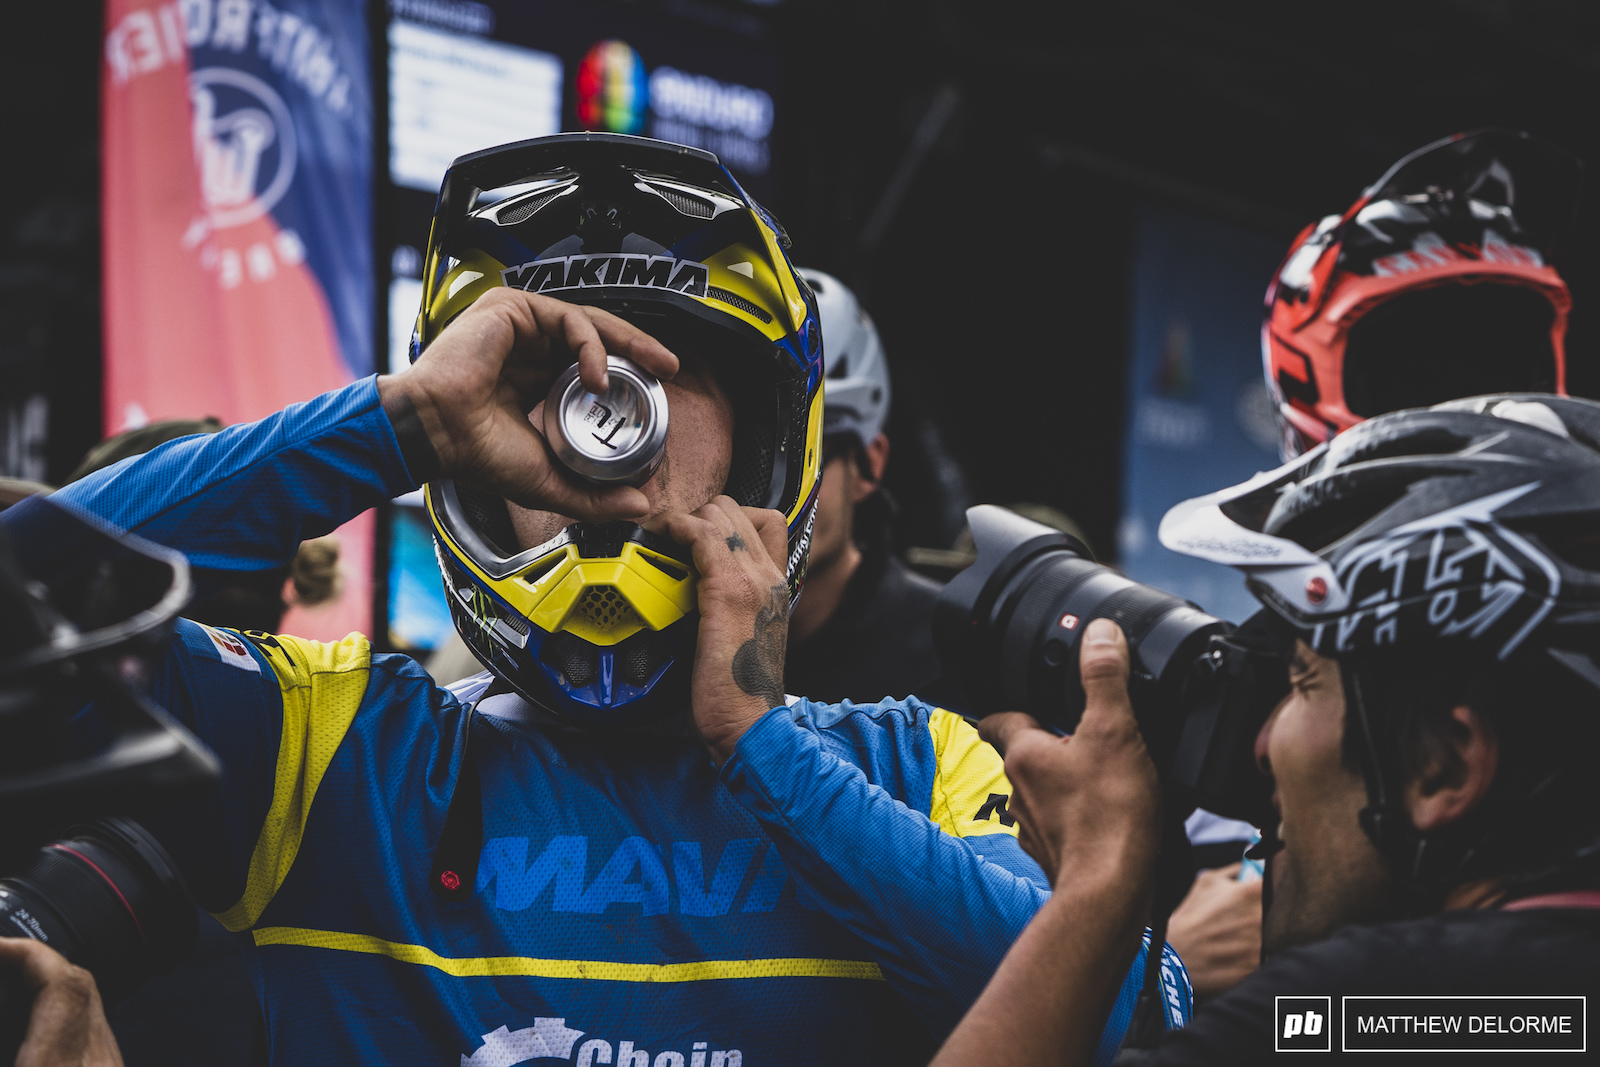 Sam Hill chugs a cold one at the finish.